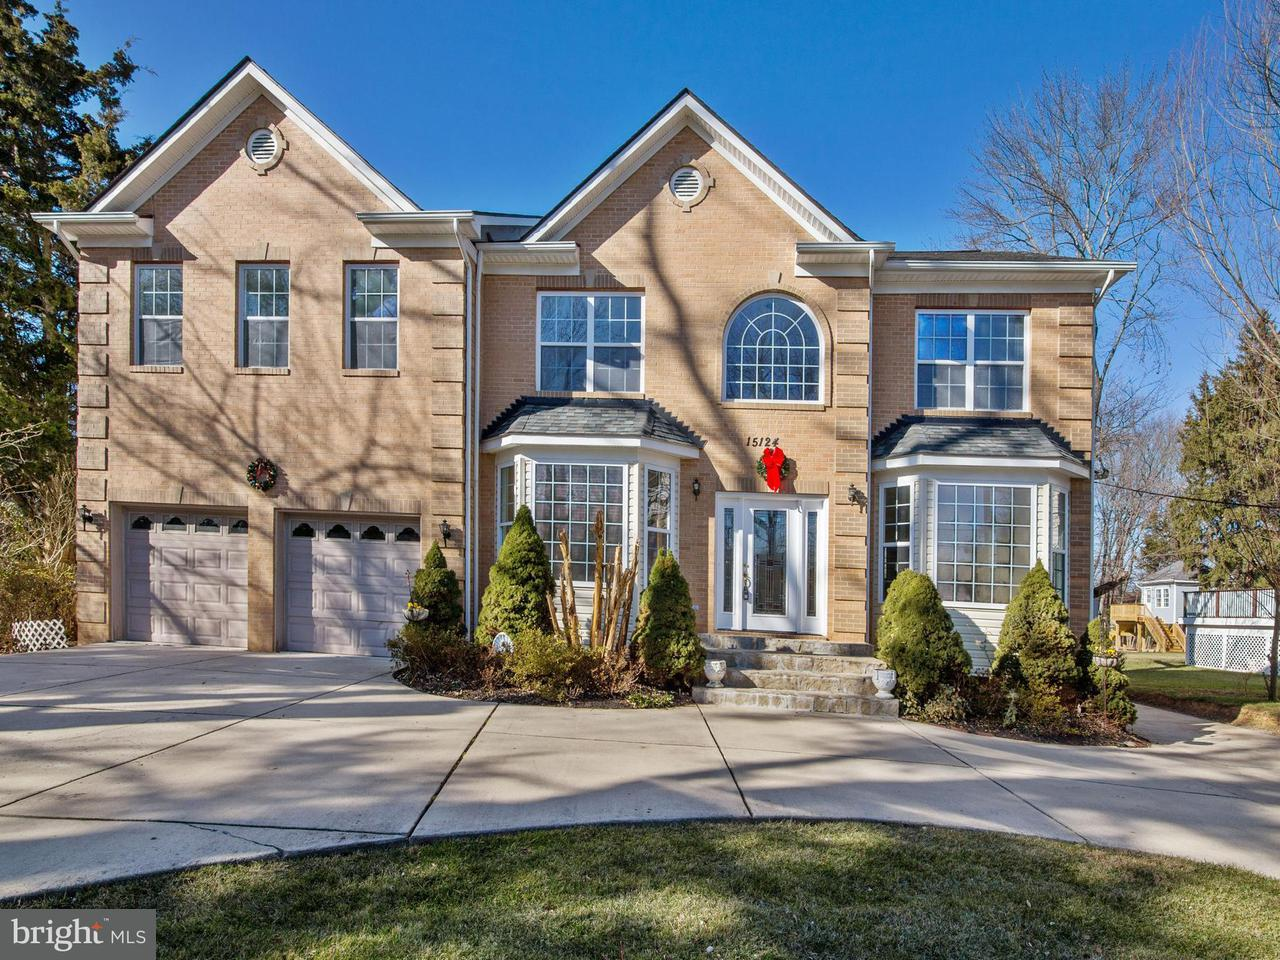 Single Family Home for Sale at 15124 Fairlawn Avenue 15124 Fairlawn Avenue Silver Spring, Maryland 20905 United States